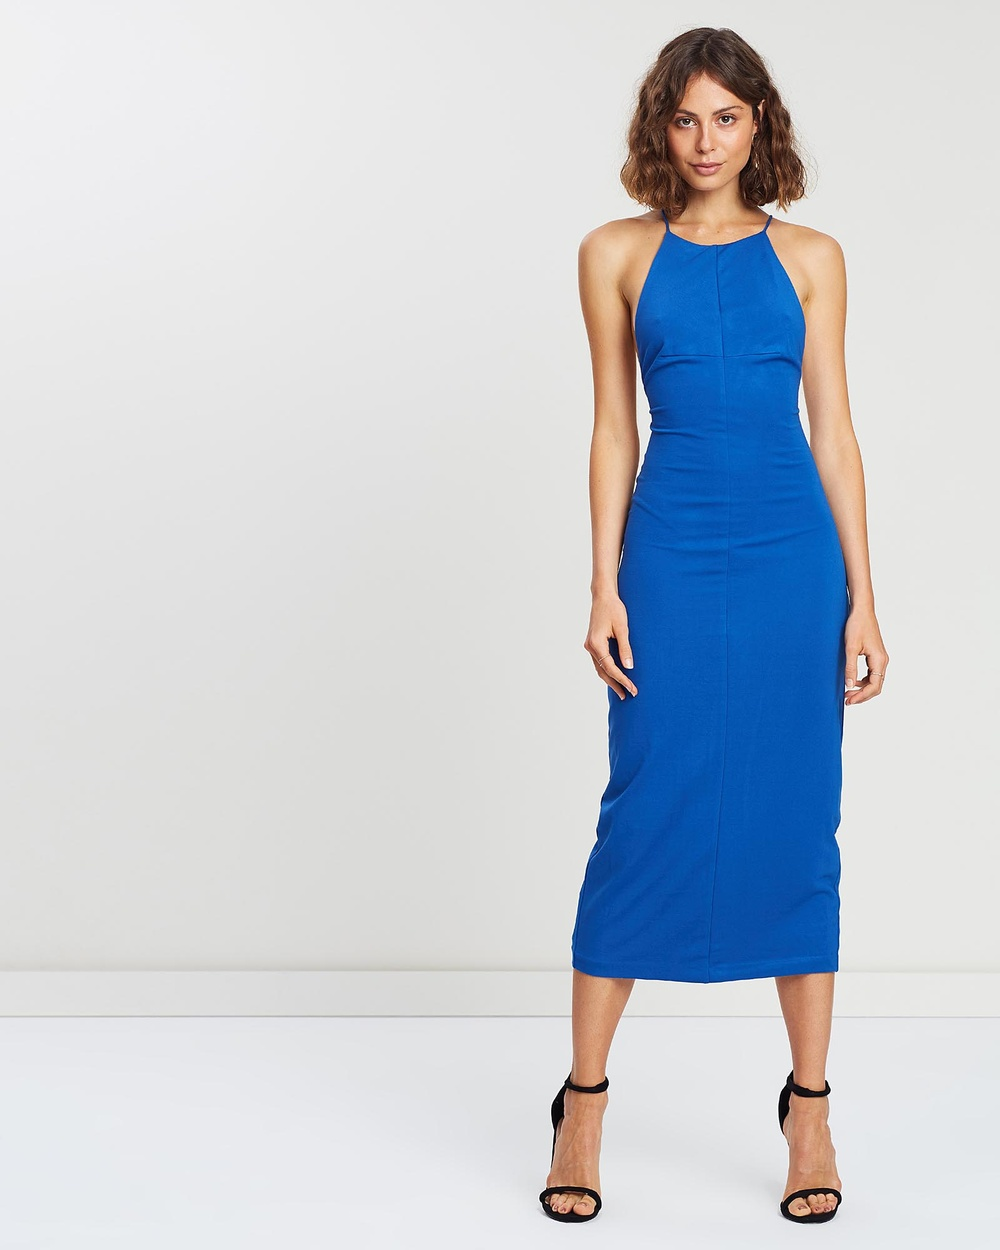 Third Form Azure Lace-Up Midi Dress